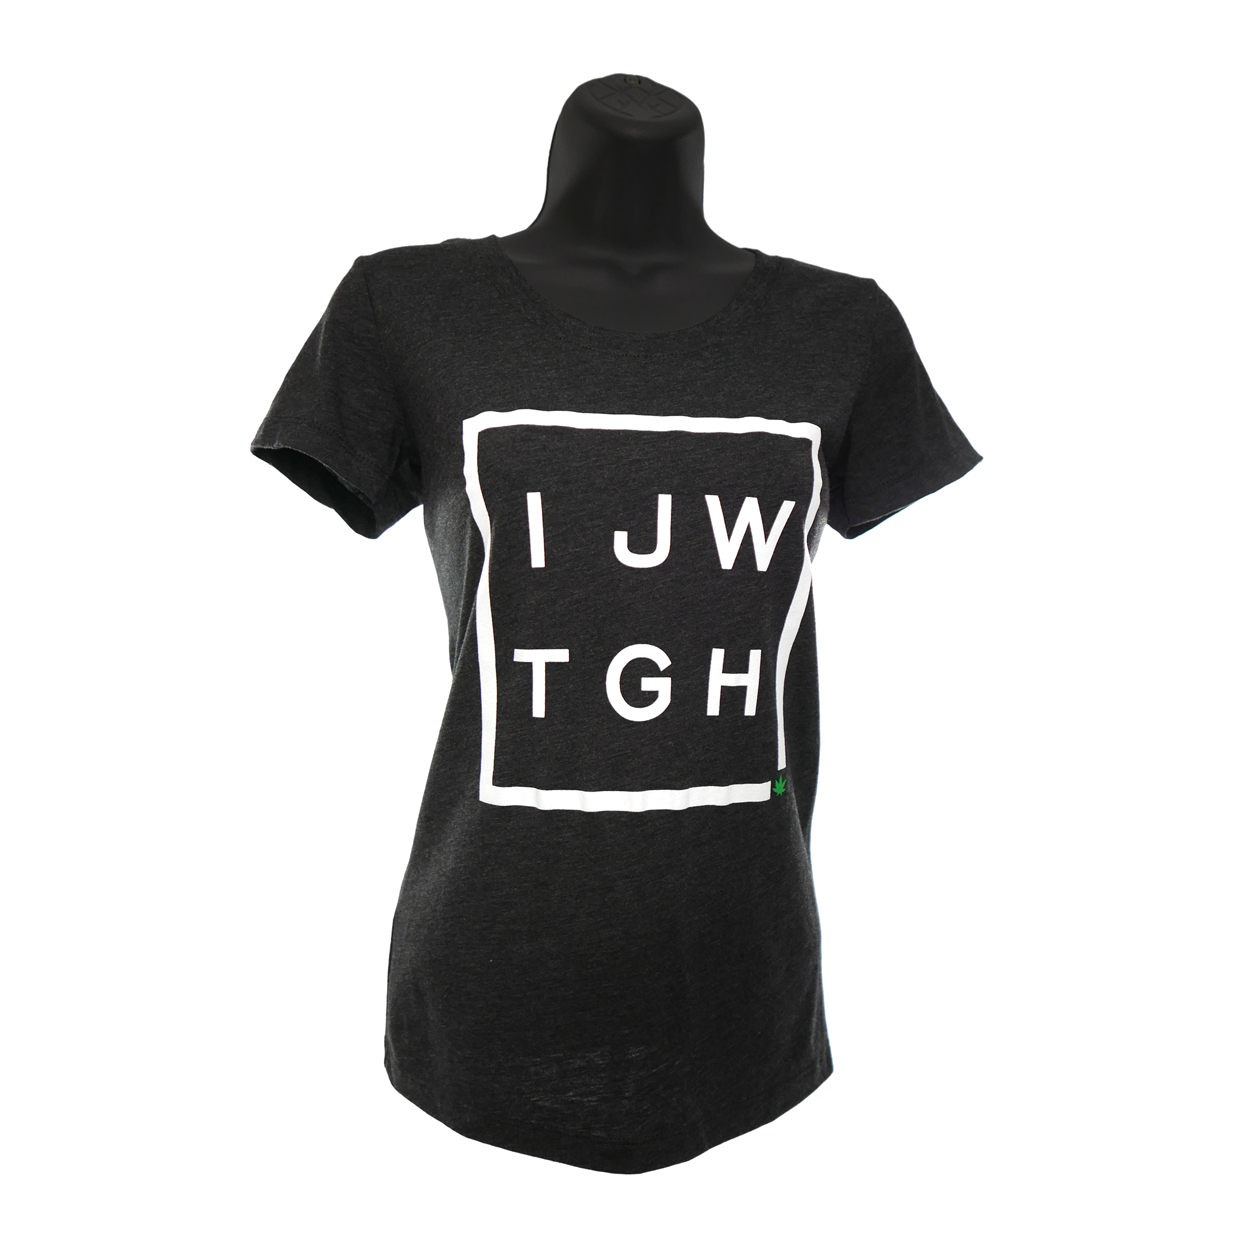 T-Shirt - I Just Want To Get High - Scoop